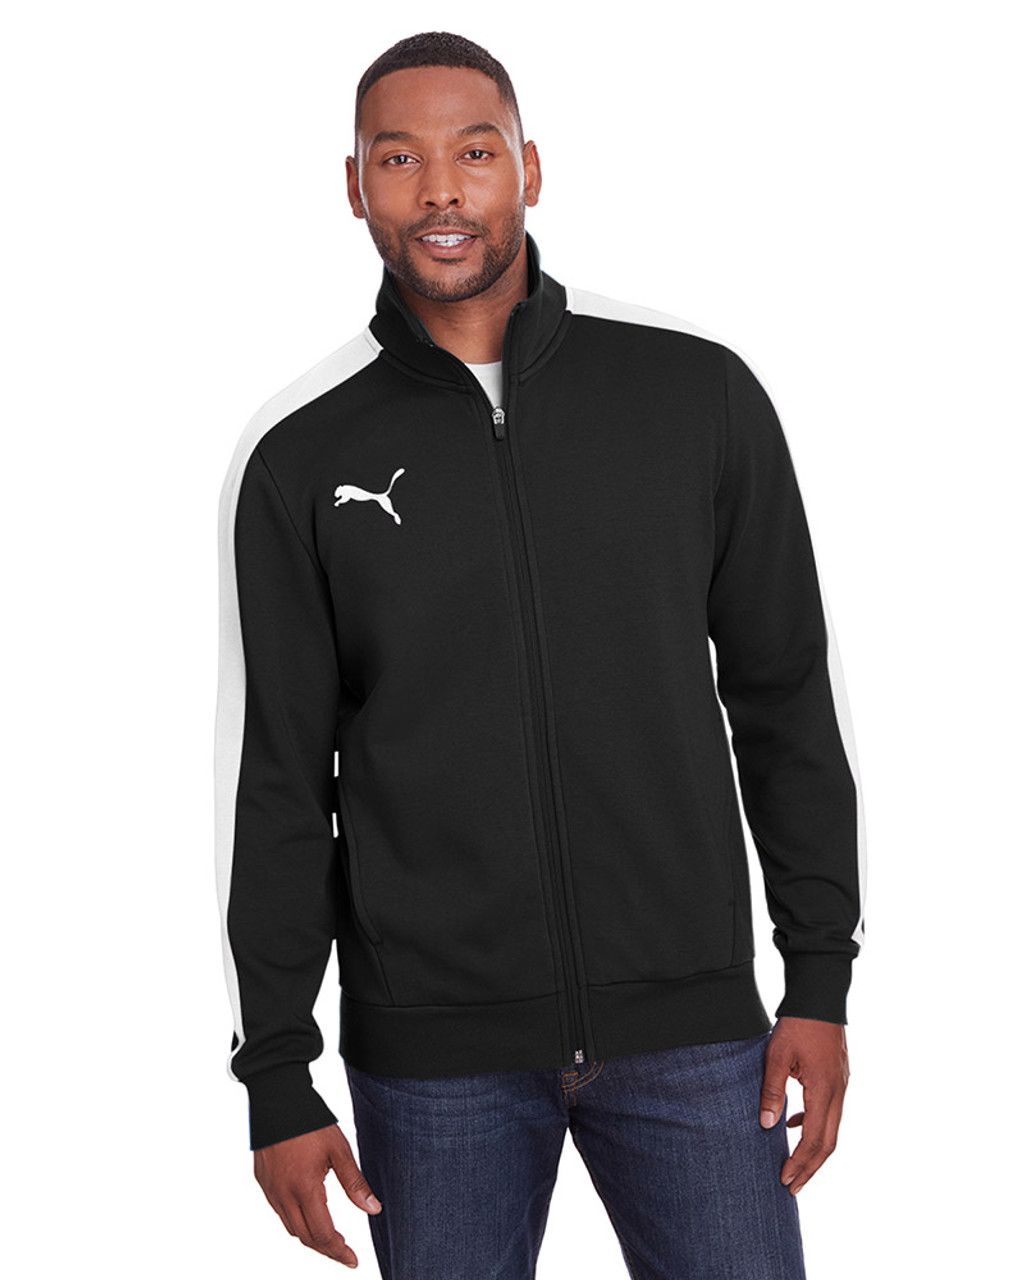 Puma Black/Puma White - 597021 Puma Sport Adult P48 Fleece Track Jacket | Blankclothing.ca